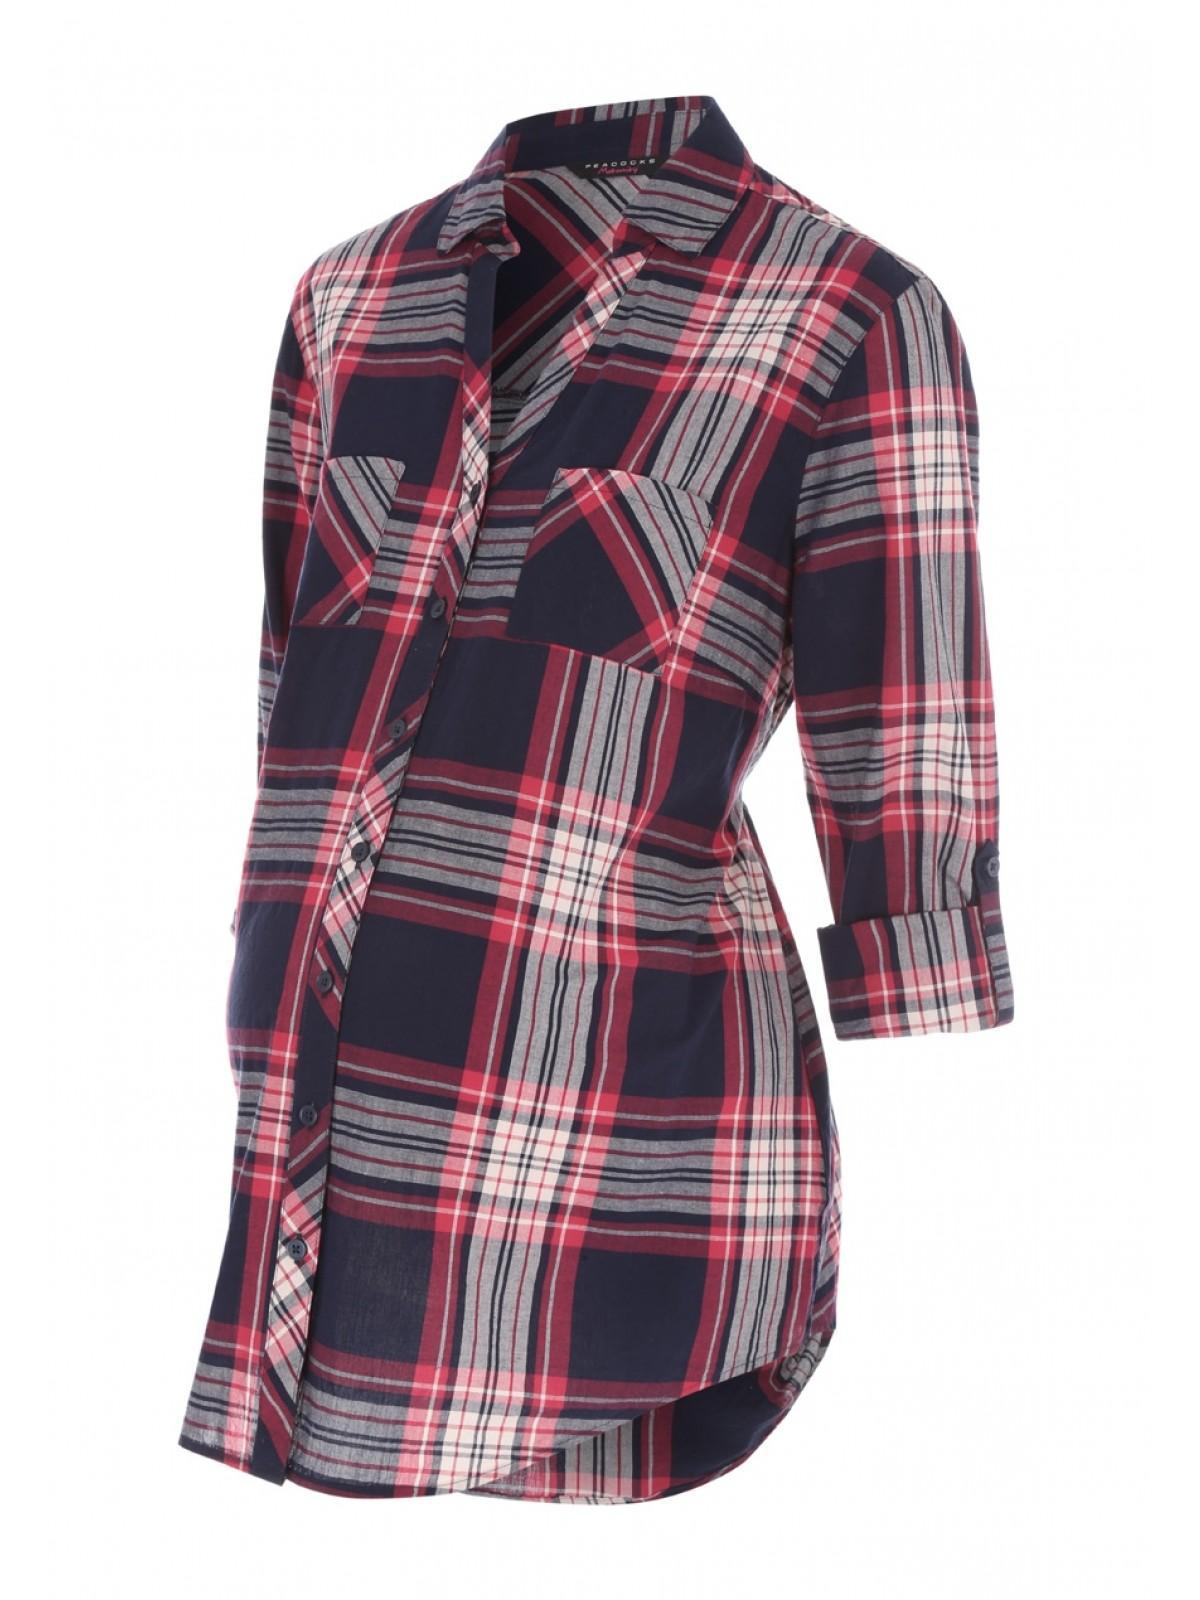 2ceda2a357c Red Check Shirt Womens Uk - Catalyst PSM